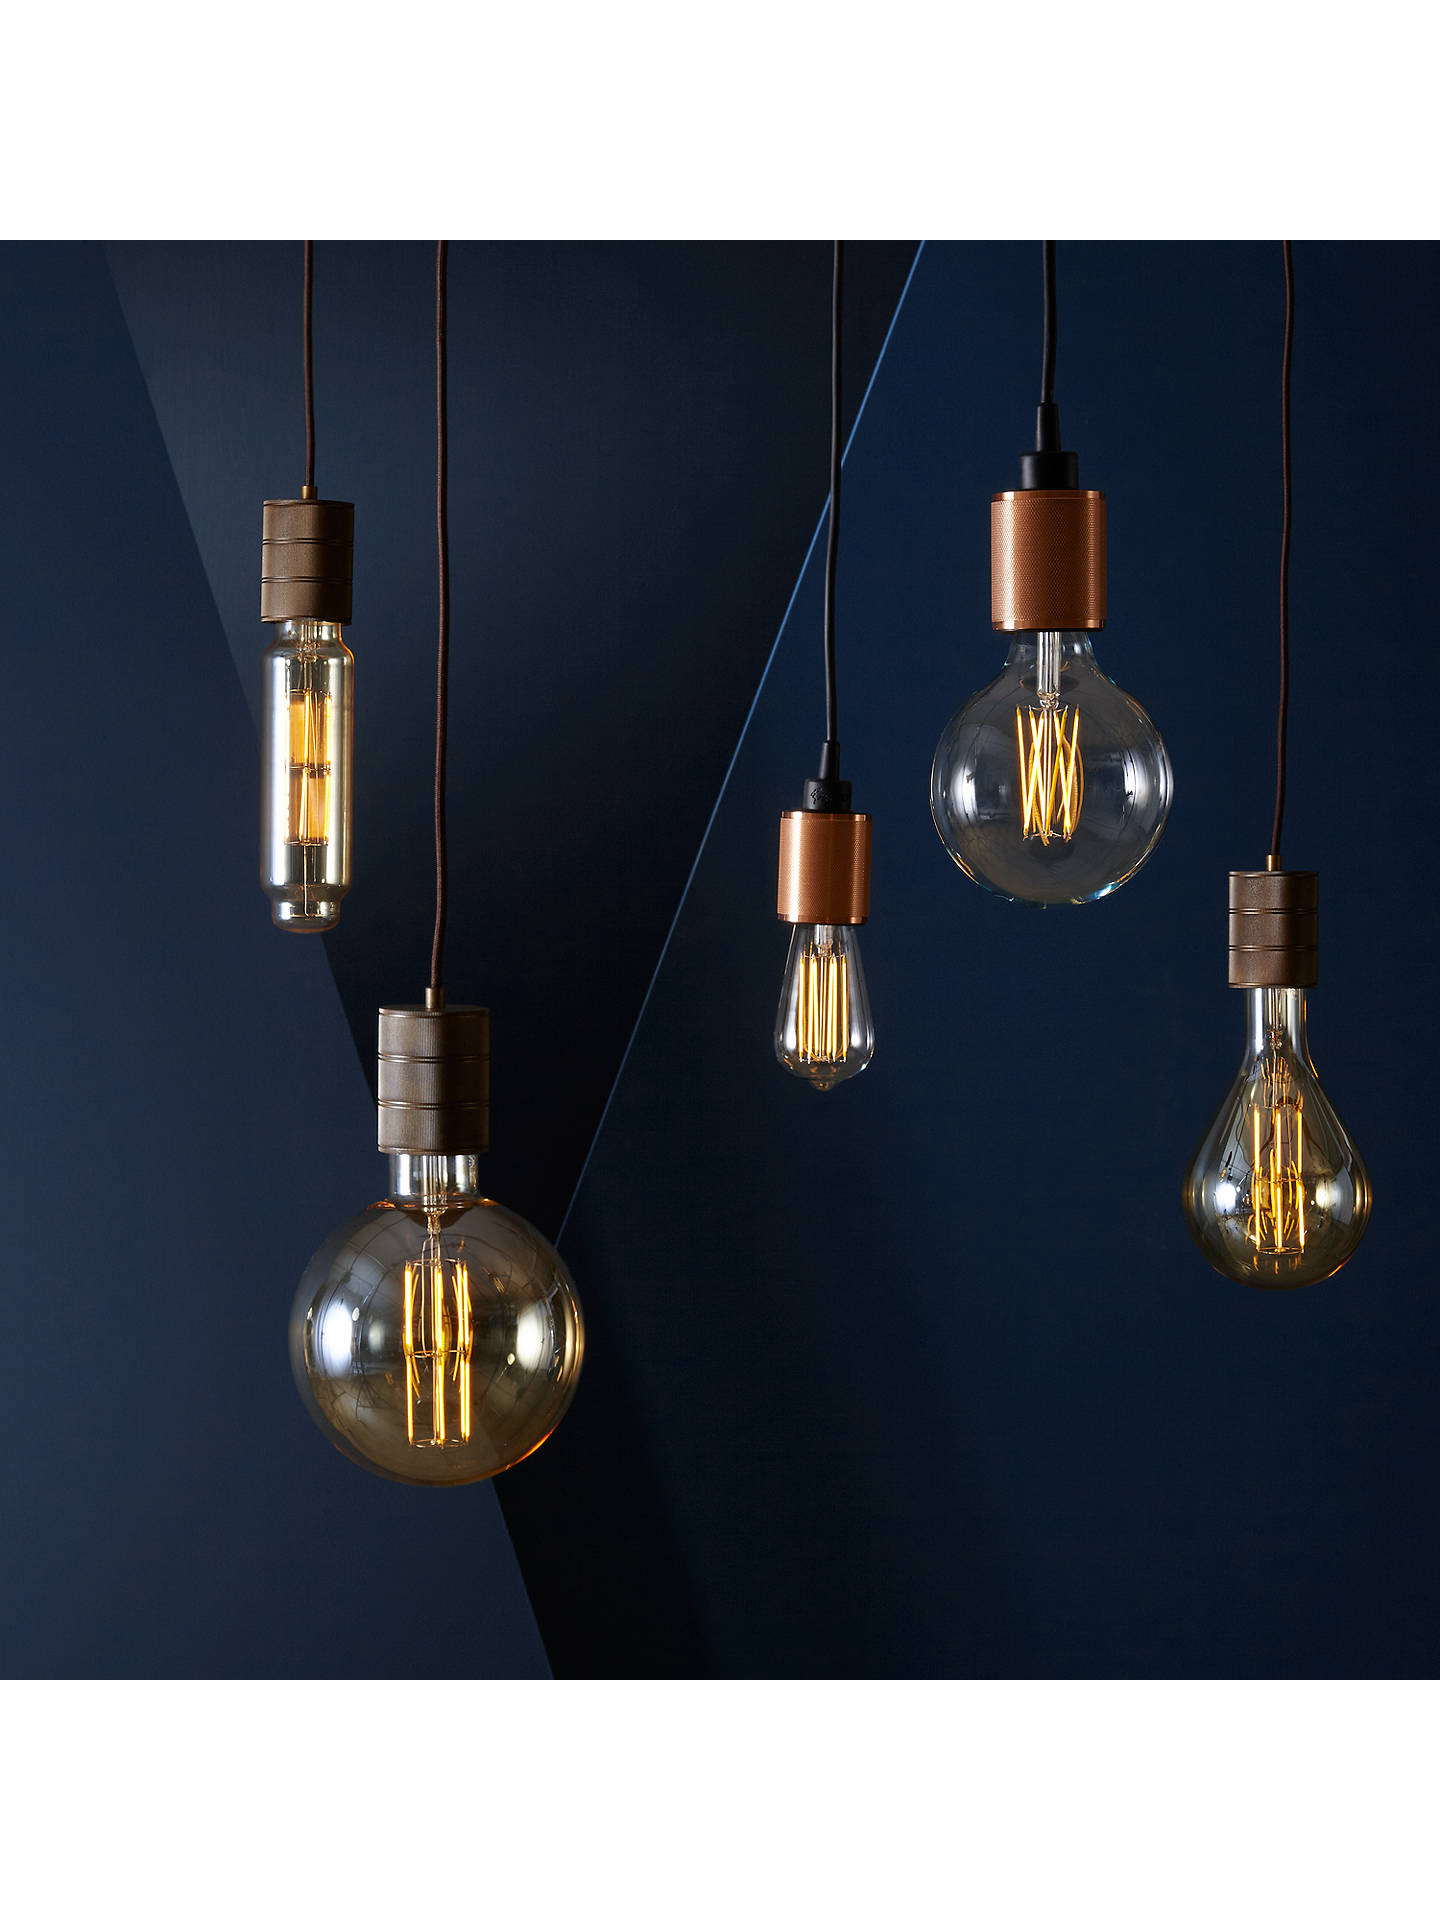 BuyCalex XXL LED Filament Globe Bulb and Pendant Set, Clear/Gold Online at johnlewis.com